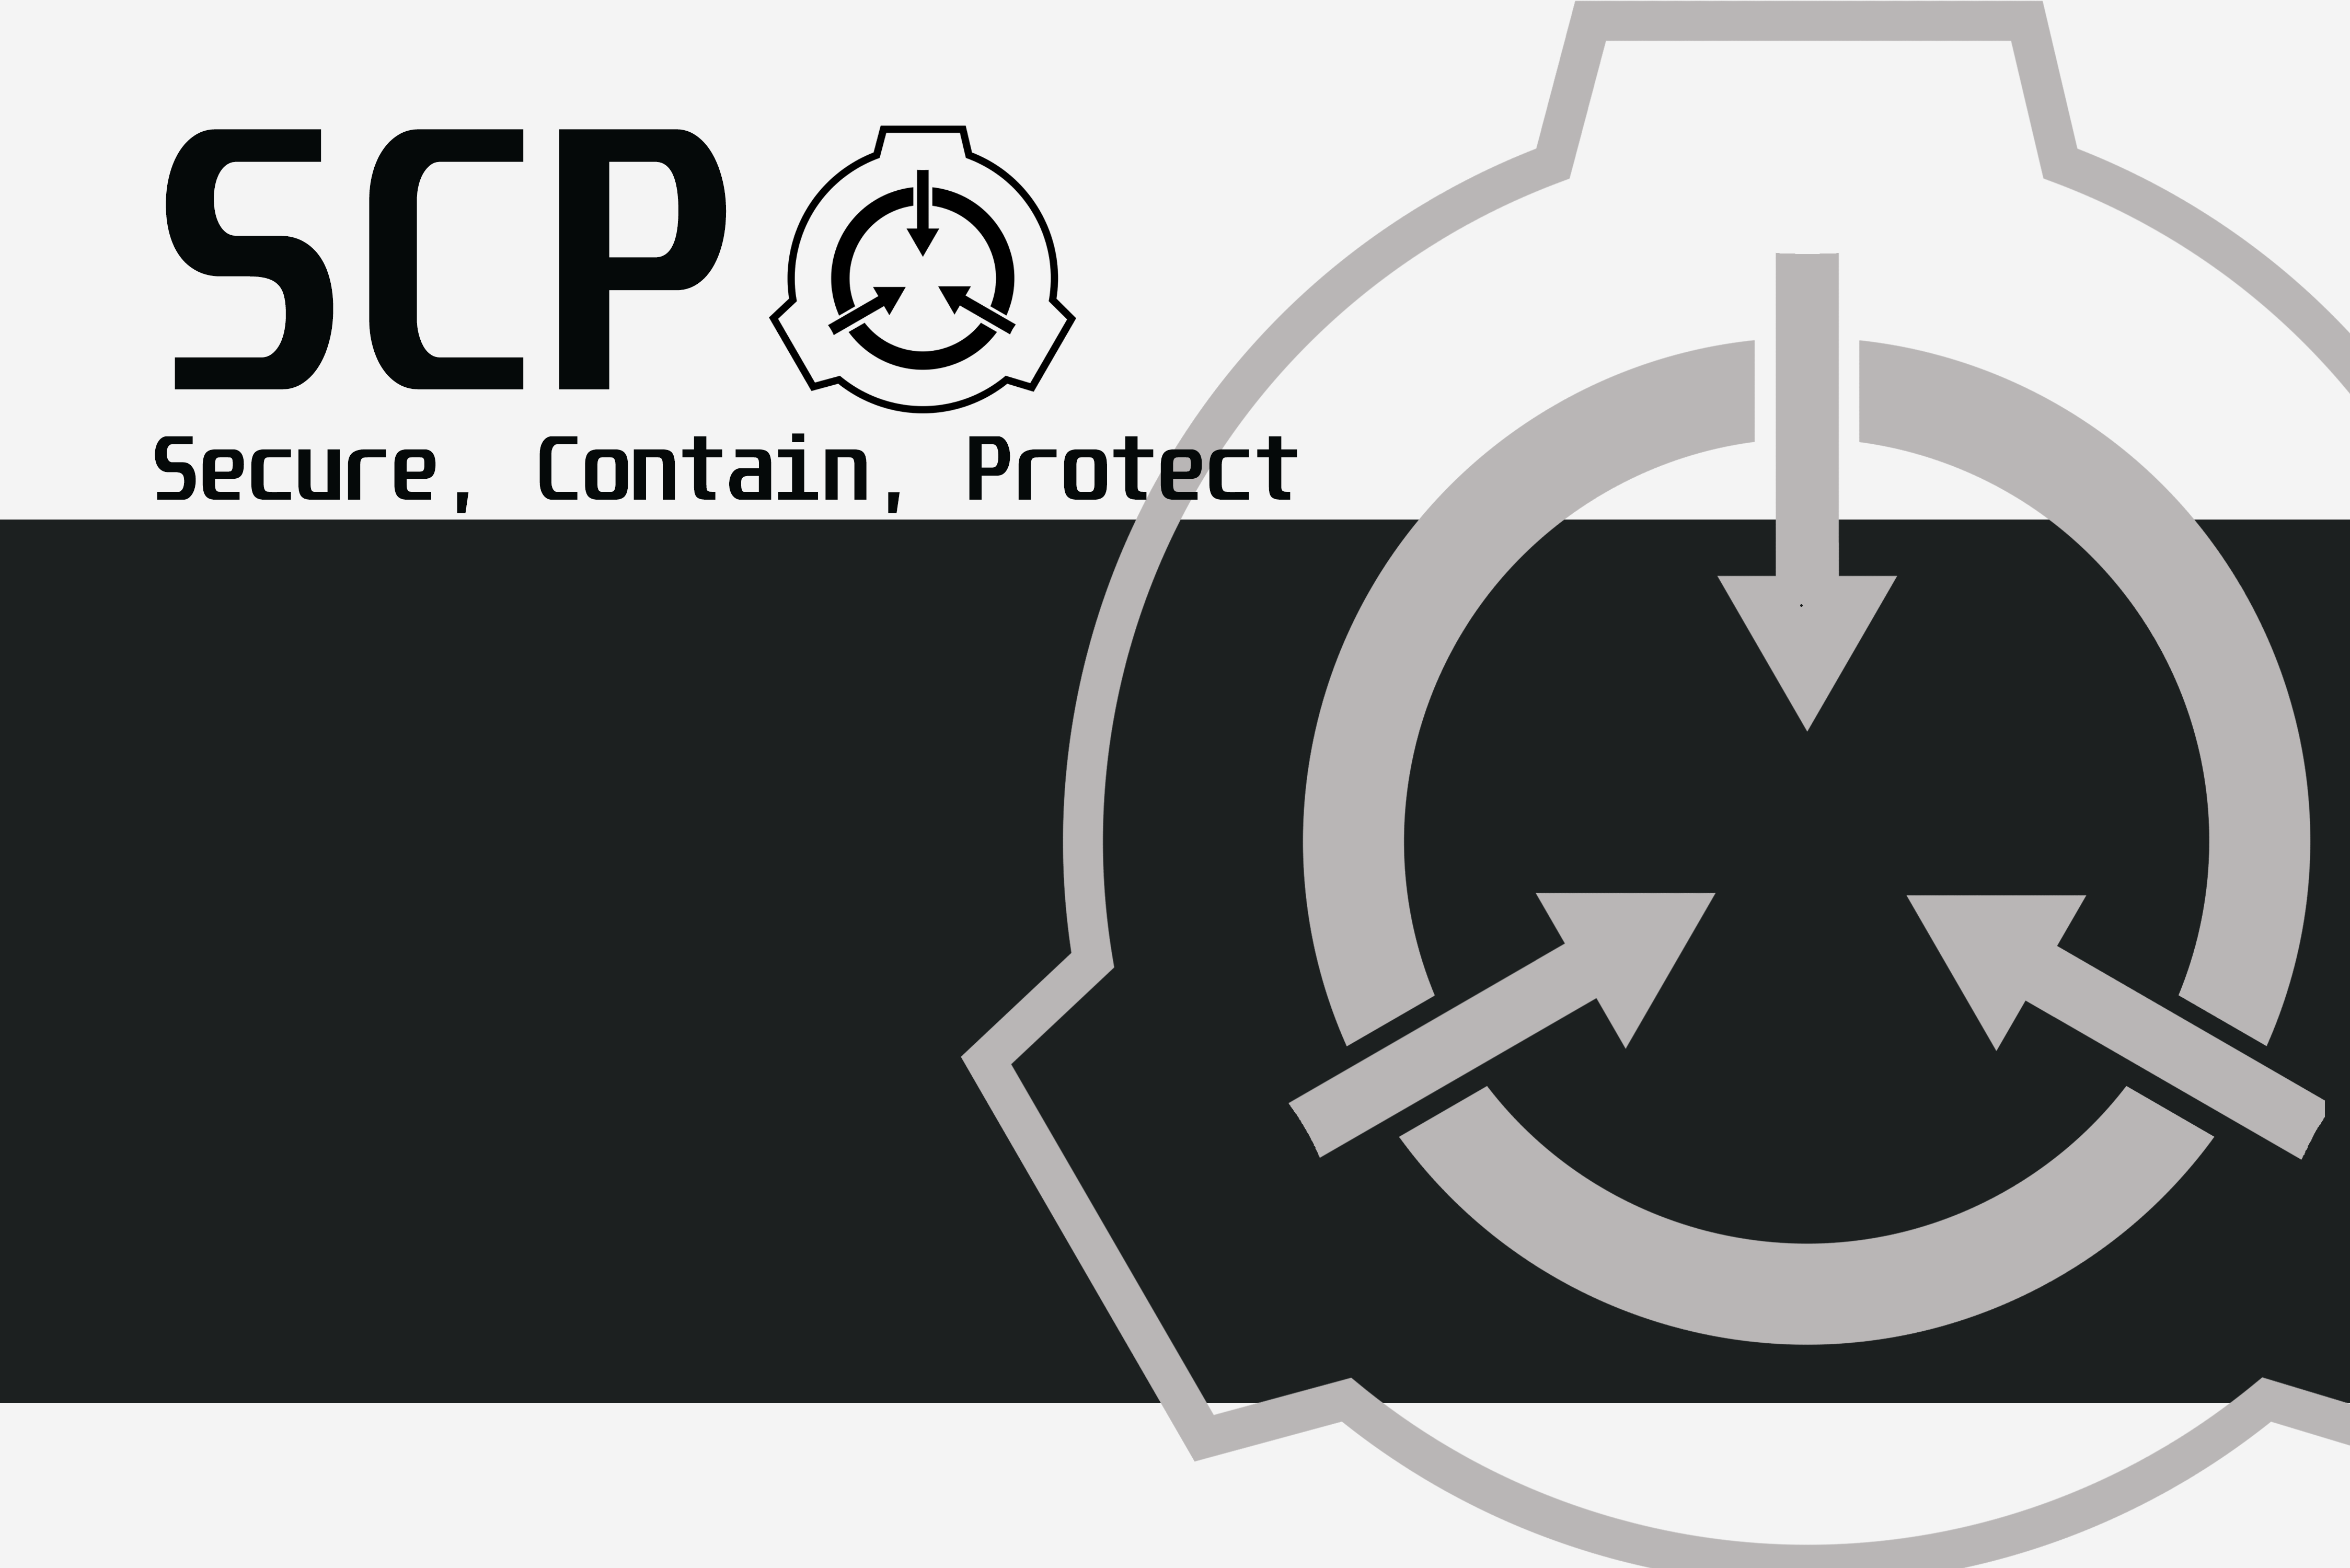 SCP-Ccard-White-02.png